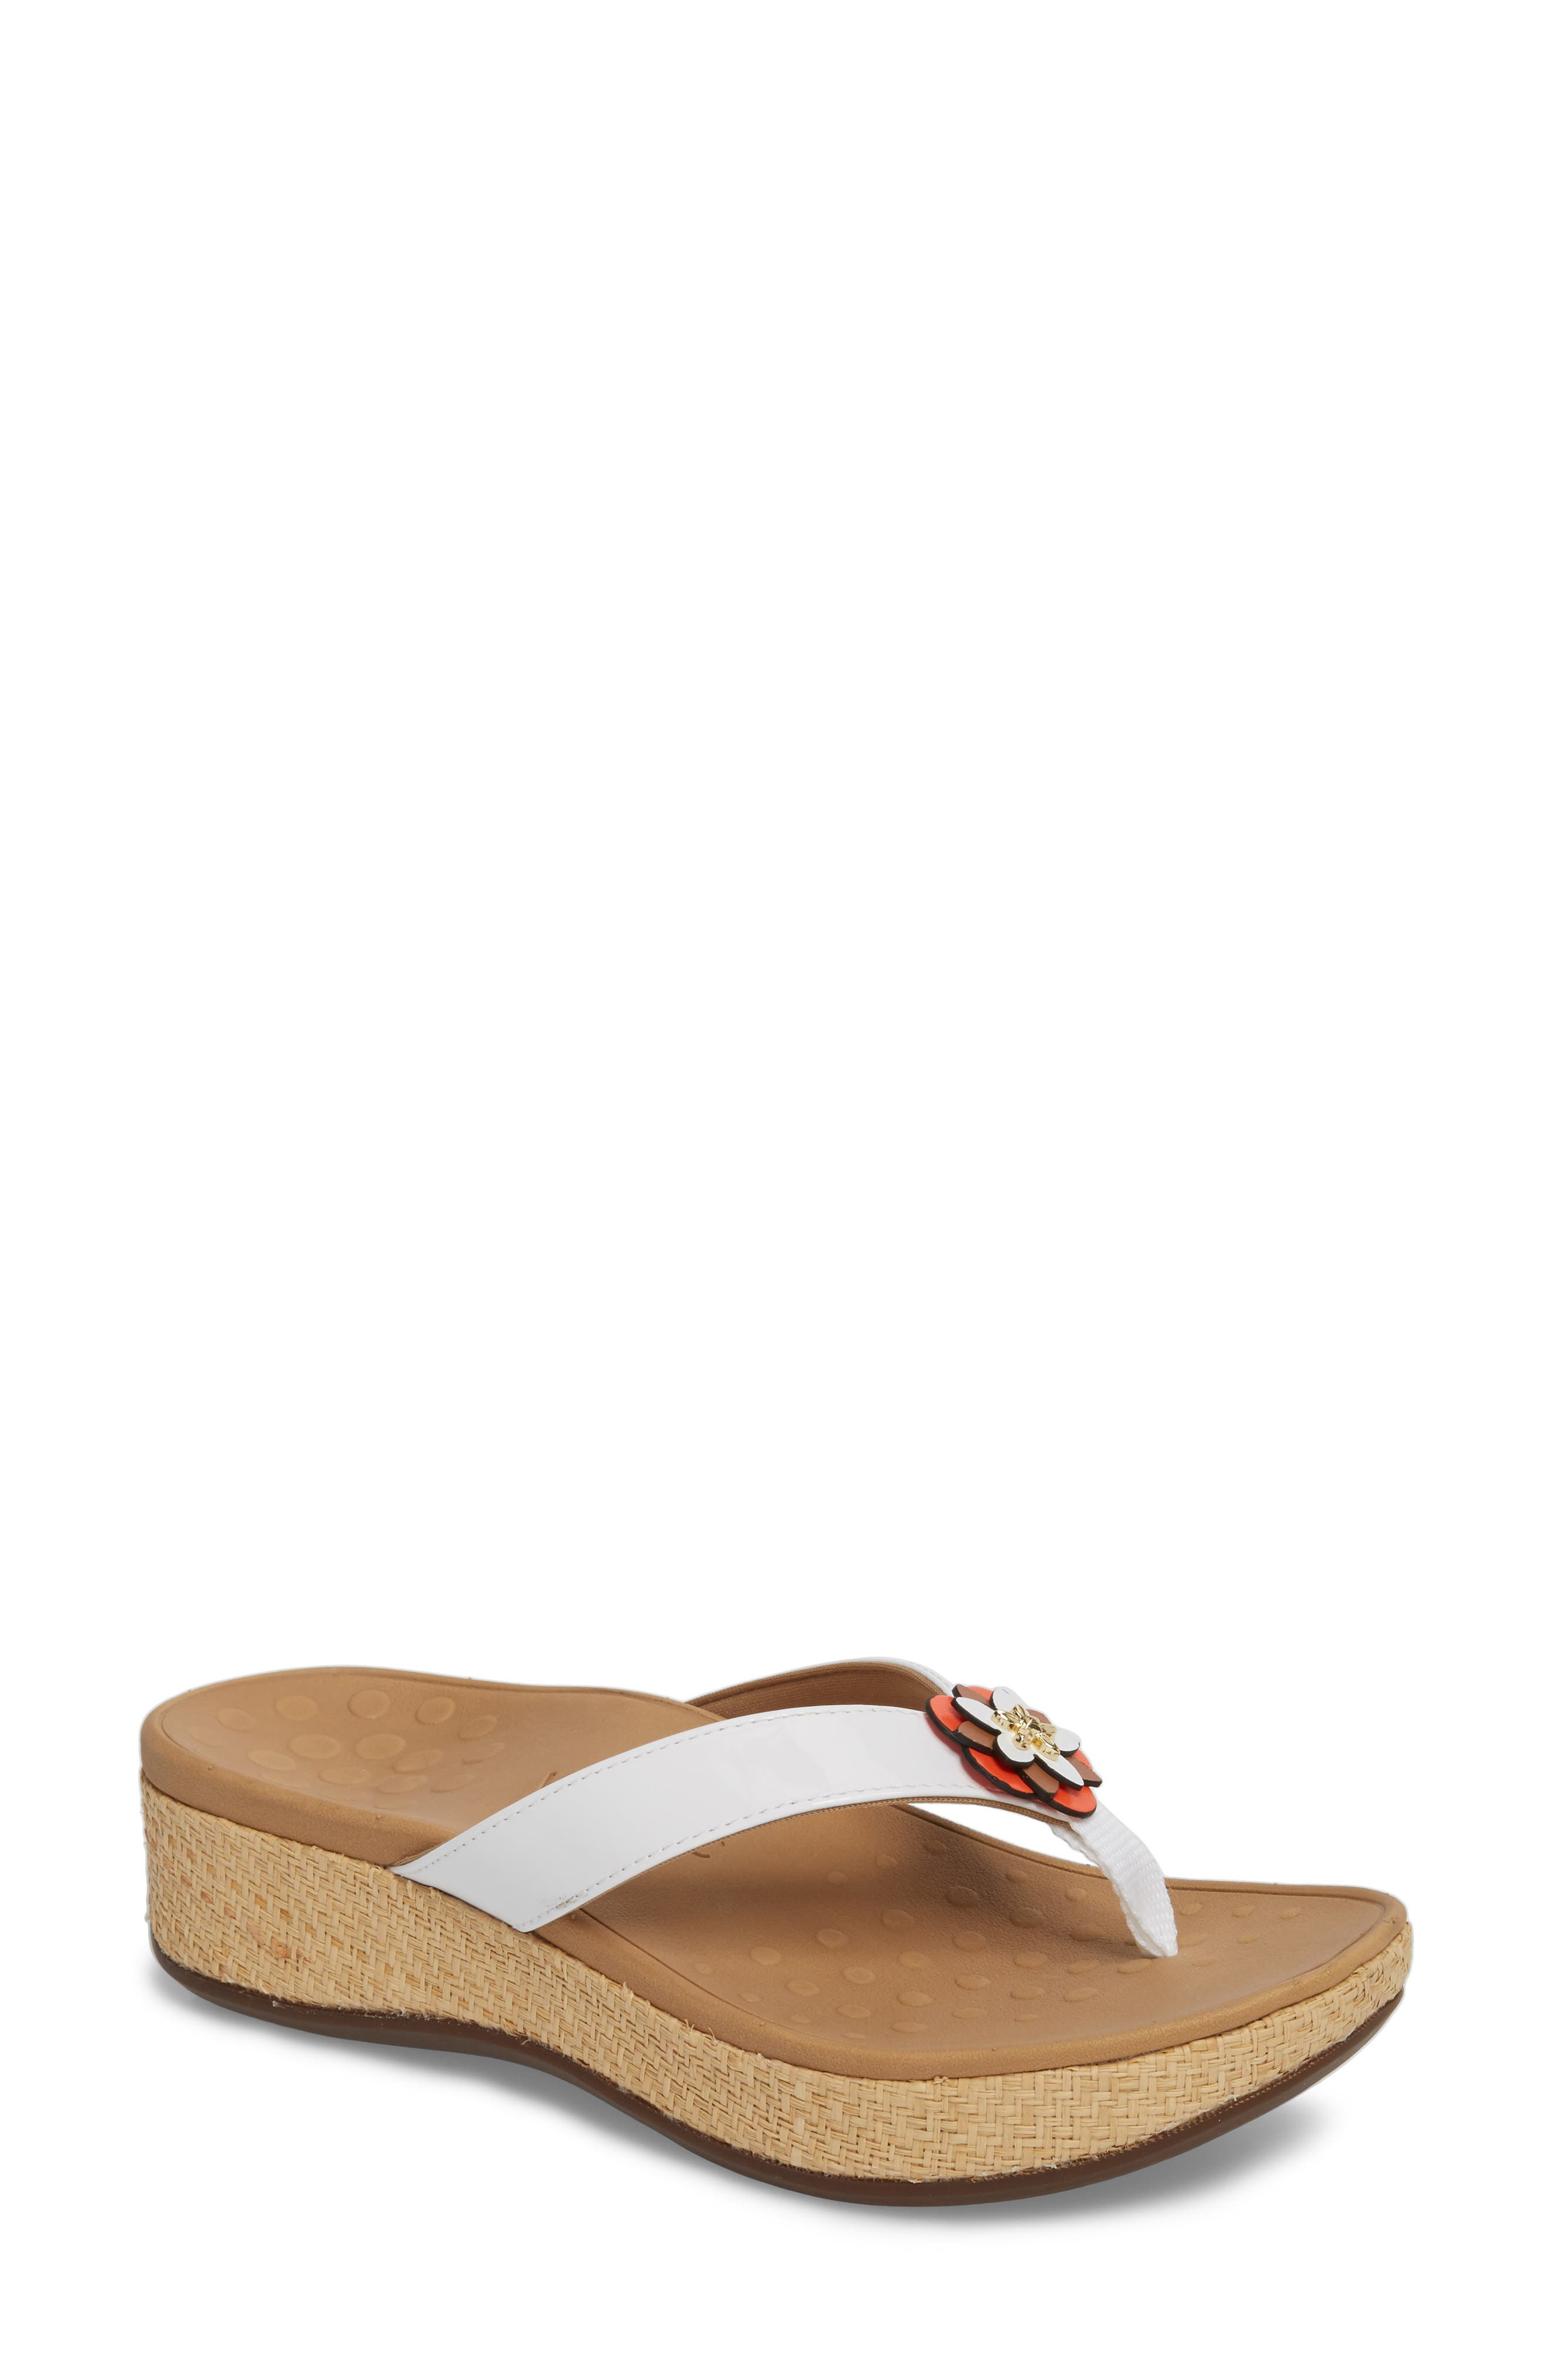 Mimi Wedge Flip Flop,                         Main,                         color, White Leather